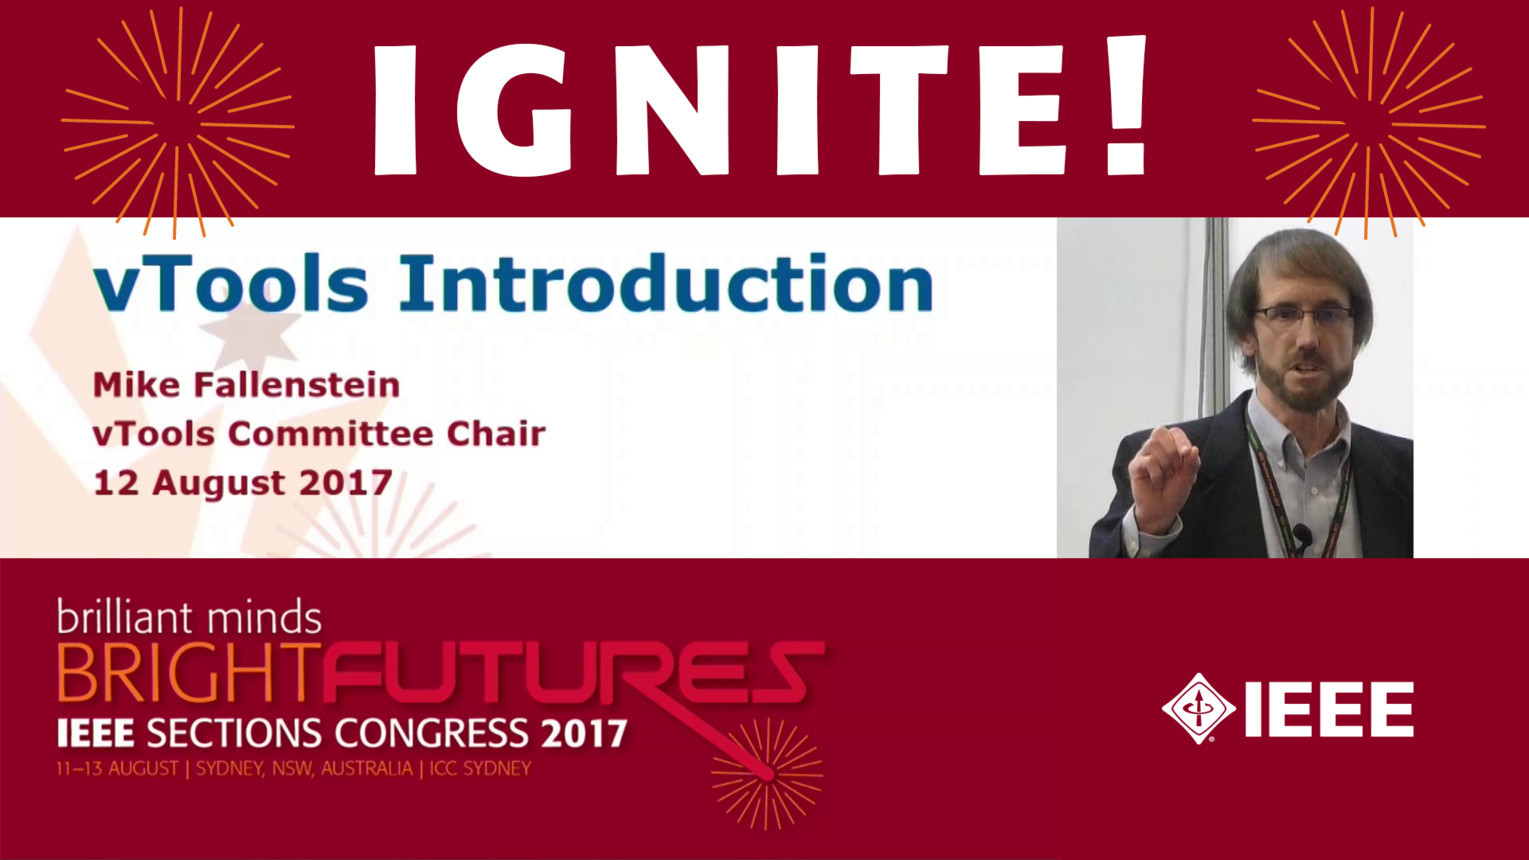 vTools Introduction - Mike Fallenstein - Ignite: Sections Congress 2017